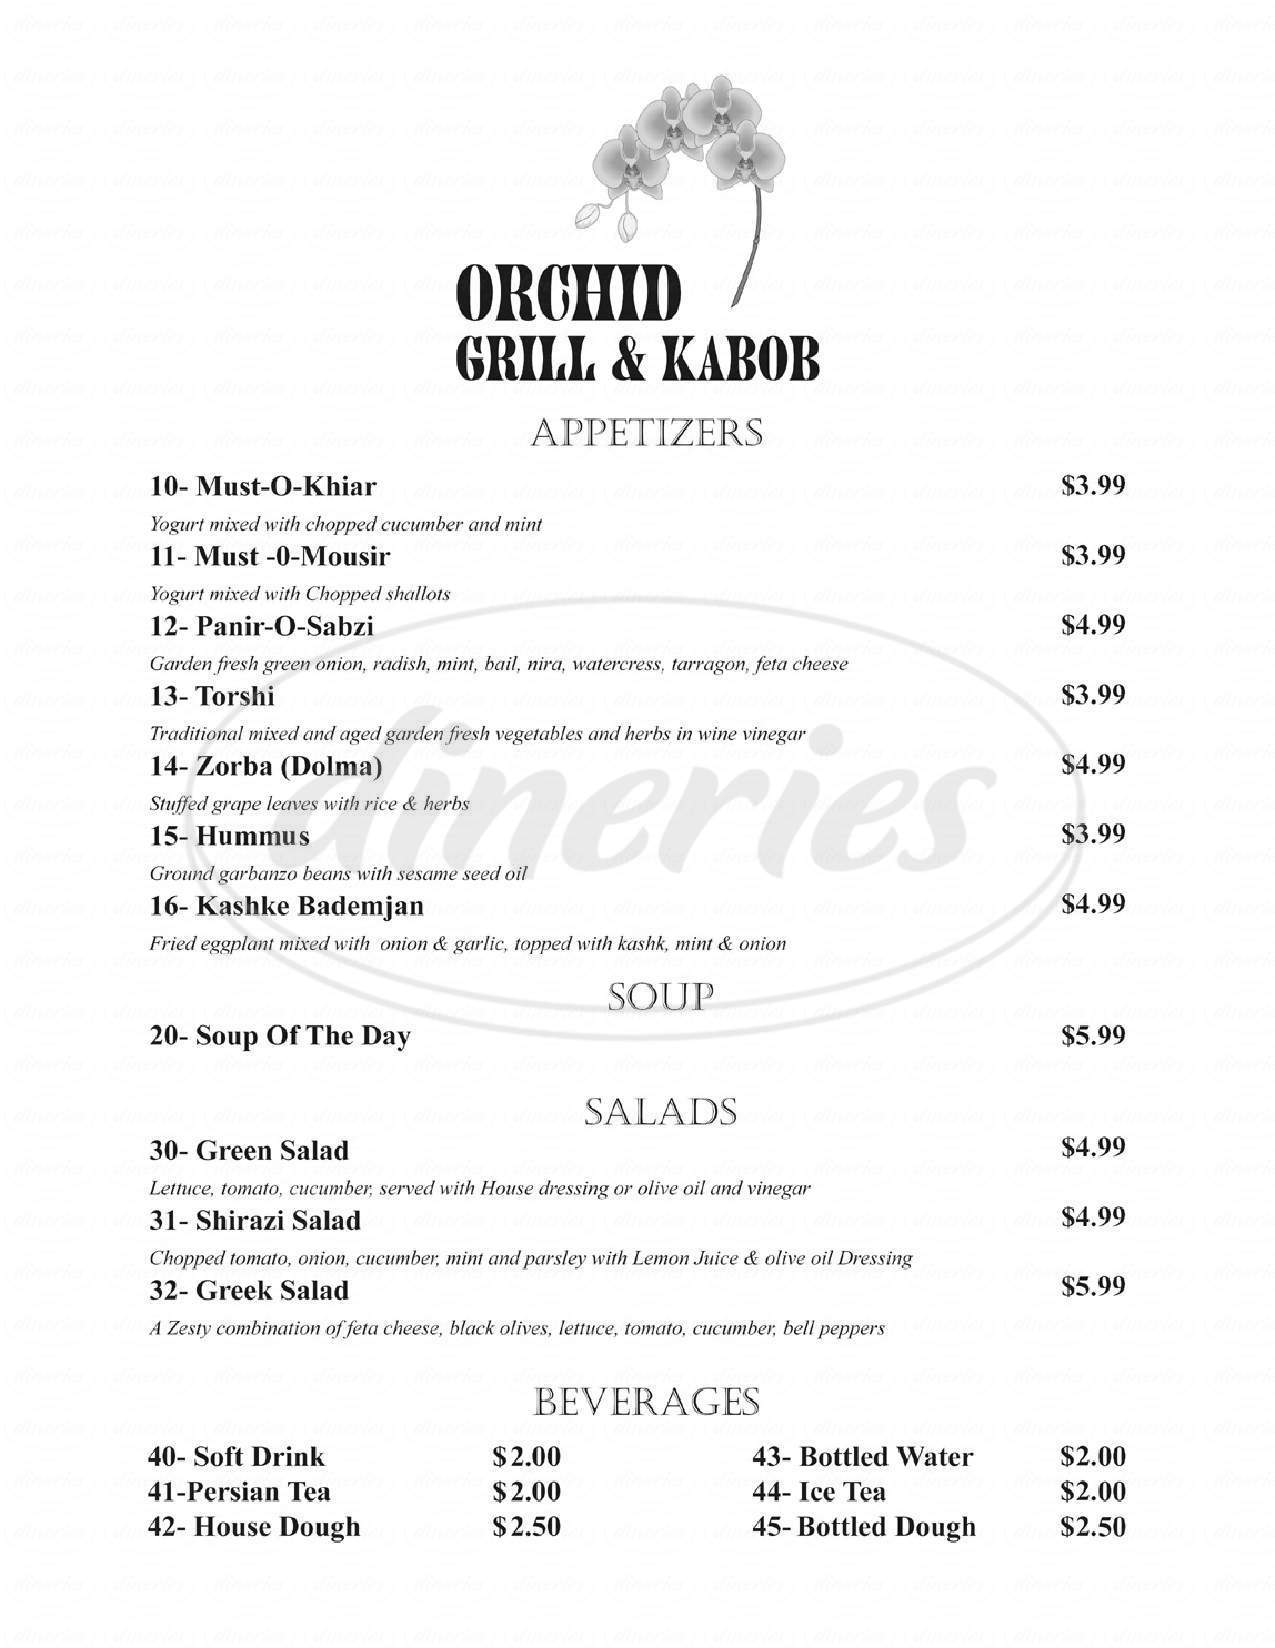 menu for Orchid Grill & Kabob